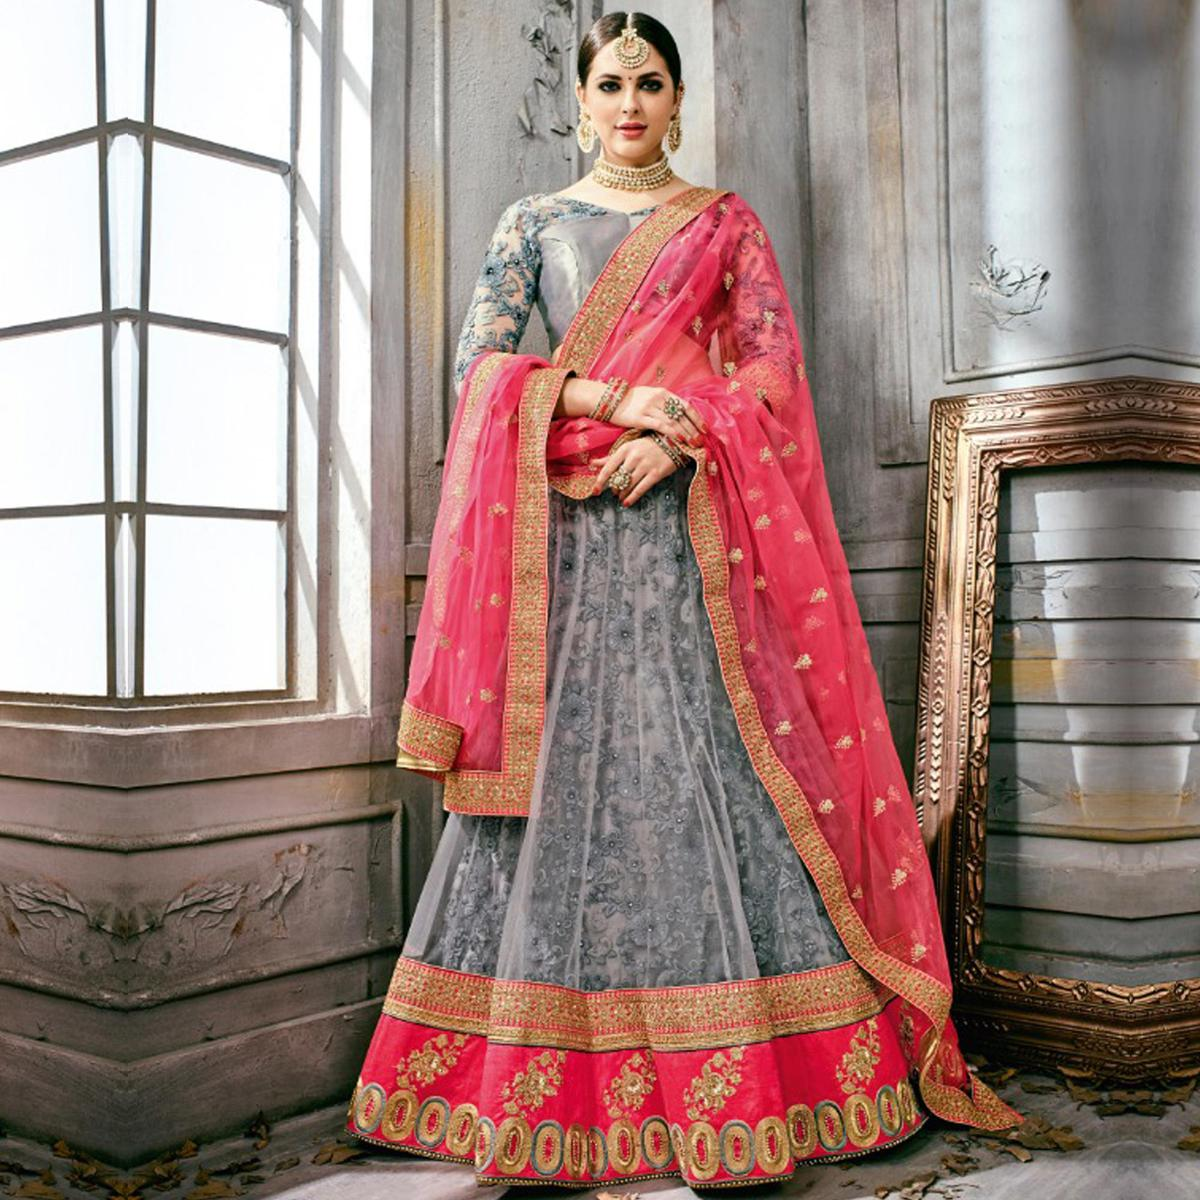 367521ebdc Buy Demanding Gray Colored Partywear Embroidered Netted Lehenga Choli For  womens online India, Best Prices, Reviews - Peachmode